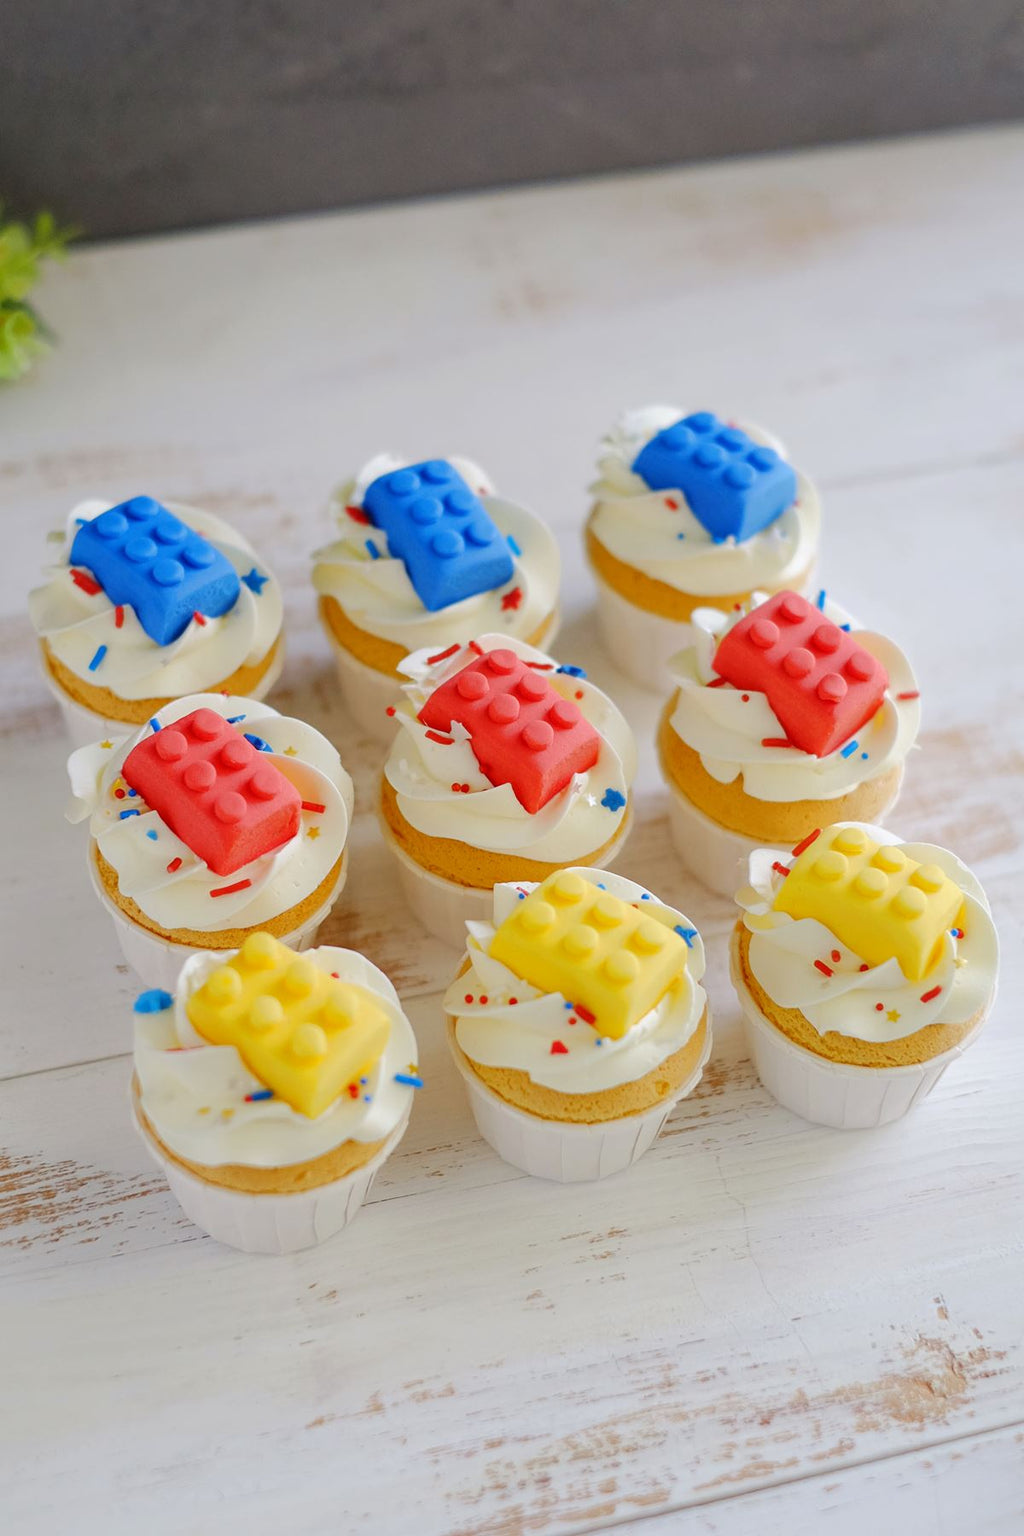 Mini Lego Theme Cupcakes (From $4/Pc)